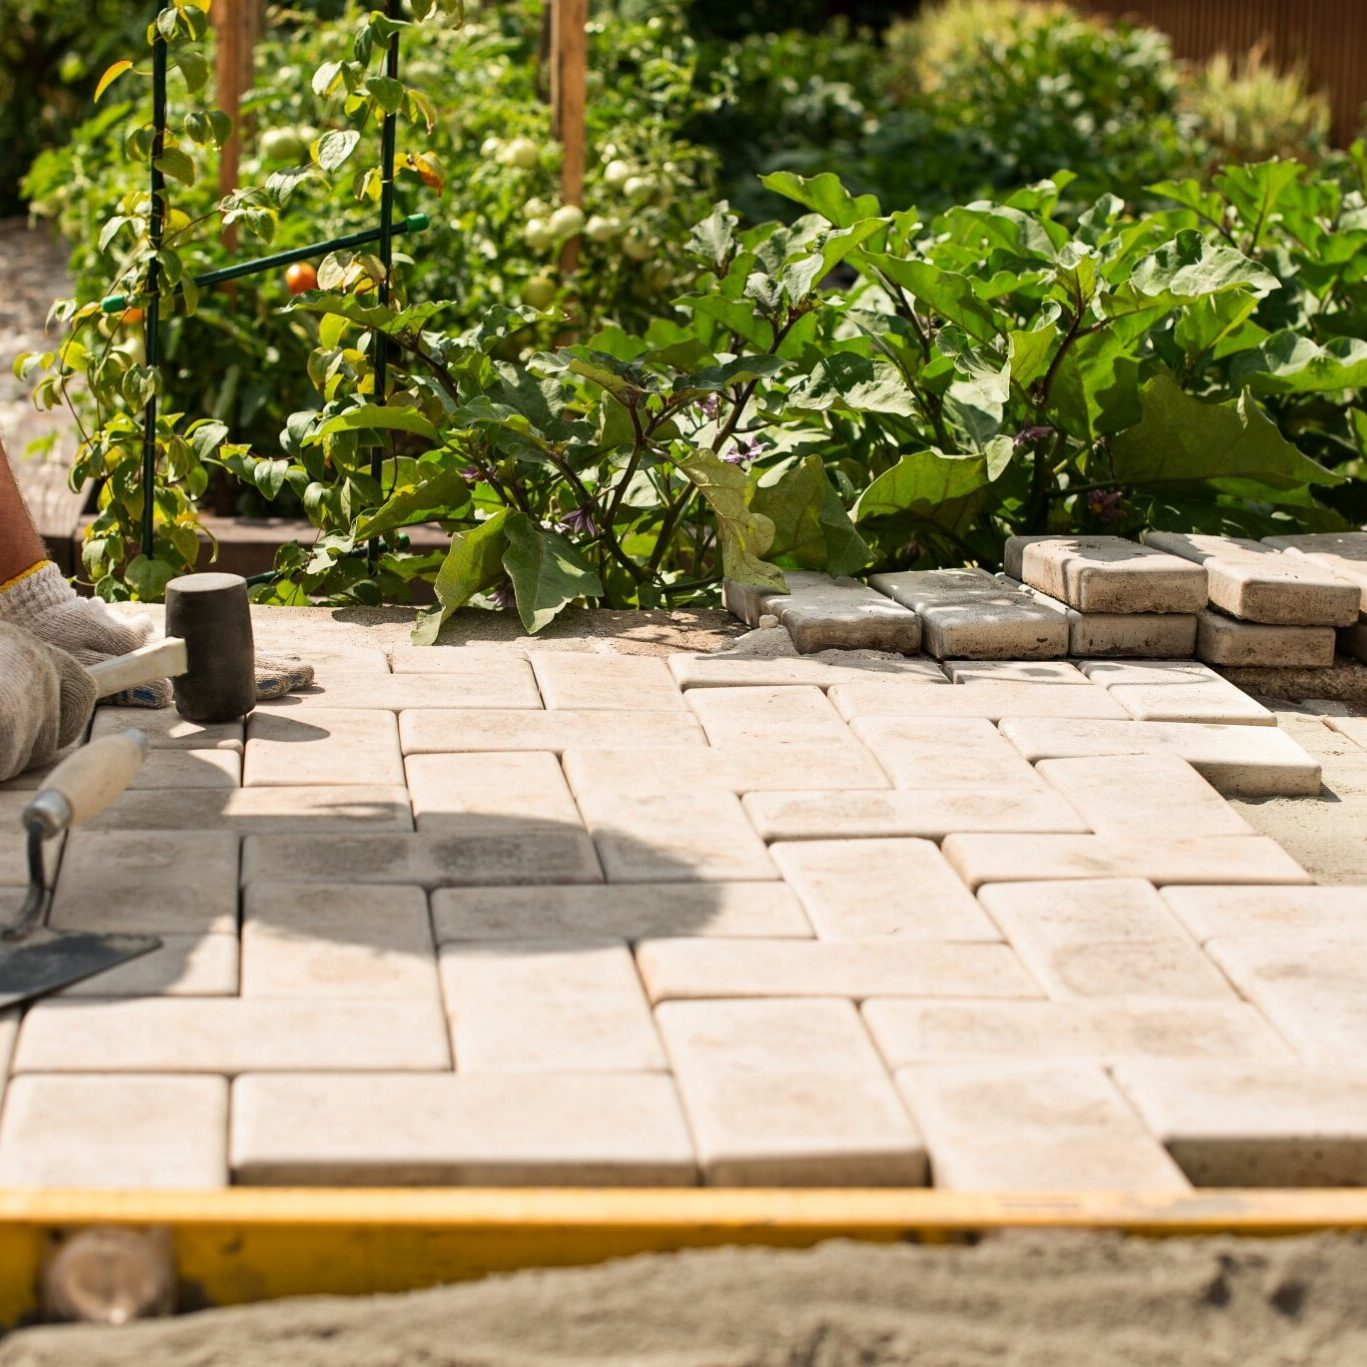 outdoor-slab-job-cottagecore-real-people-garden-place-of-work-builder-floor-hammer-sidewalk-stone_t20_P0OmQy